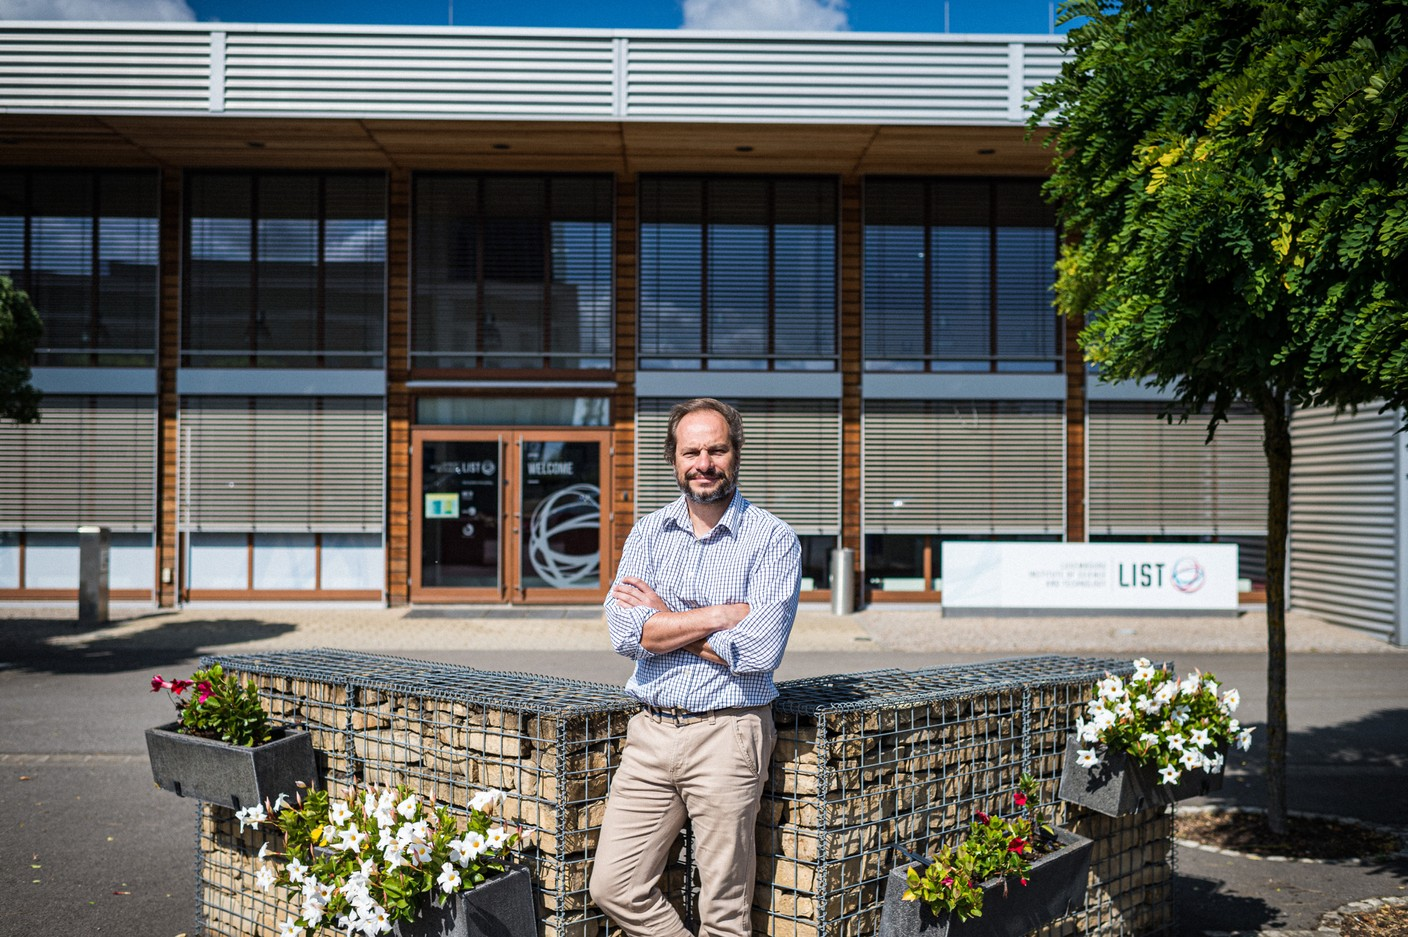 Damien Lenoble, in front of the soon-to-be-former LIST building. Photo: Mike Zenari